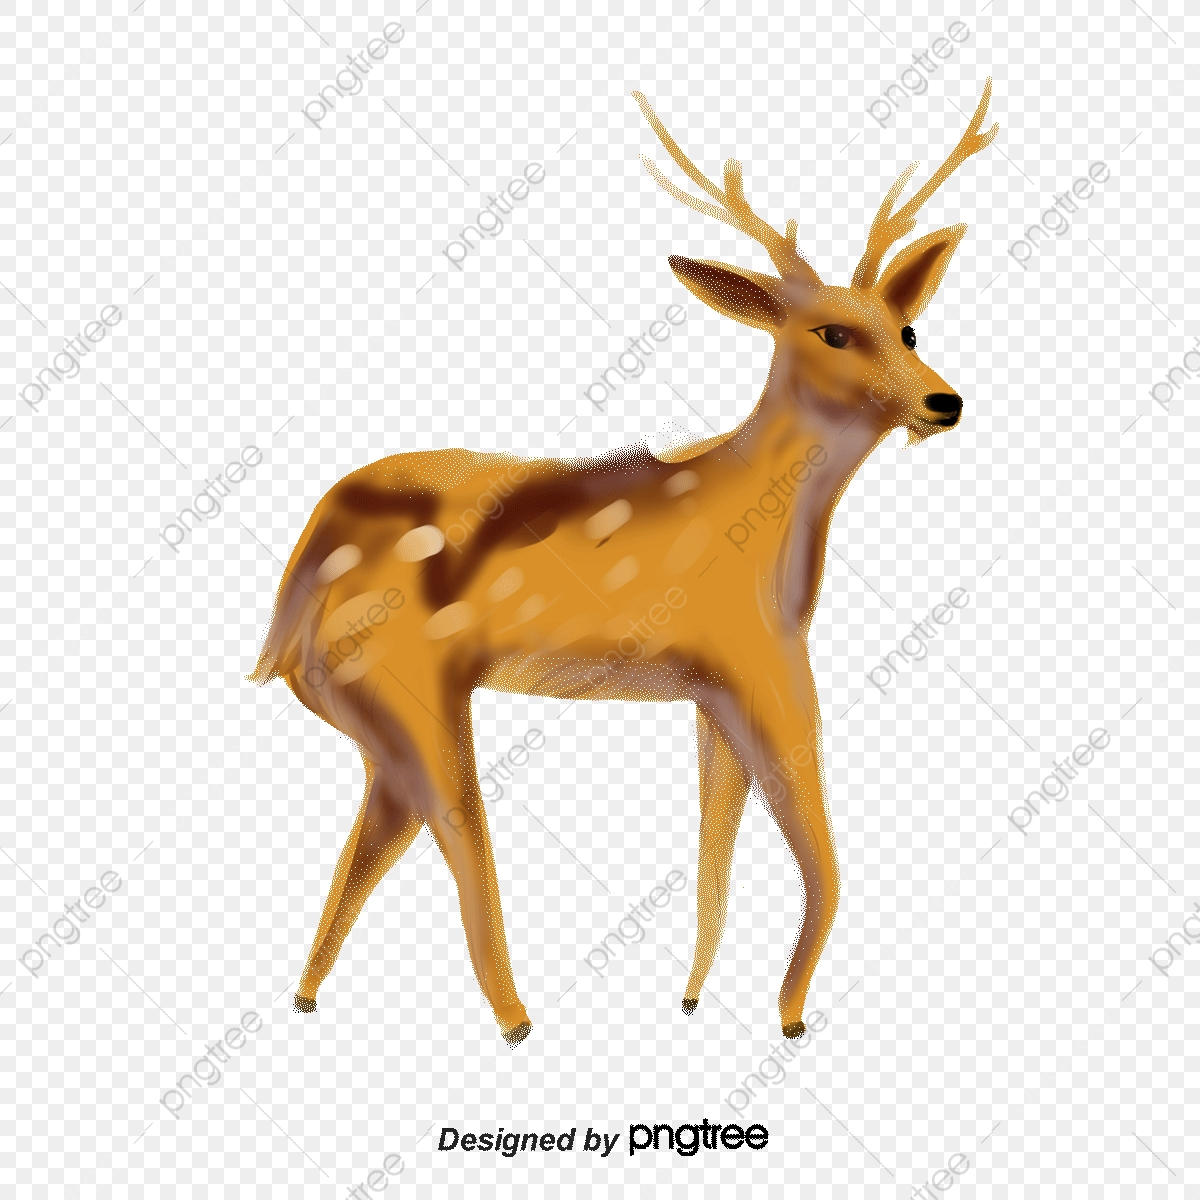 Deer, Deer Vector, Vector PNG Transparent Clipart Image and PSD File.